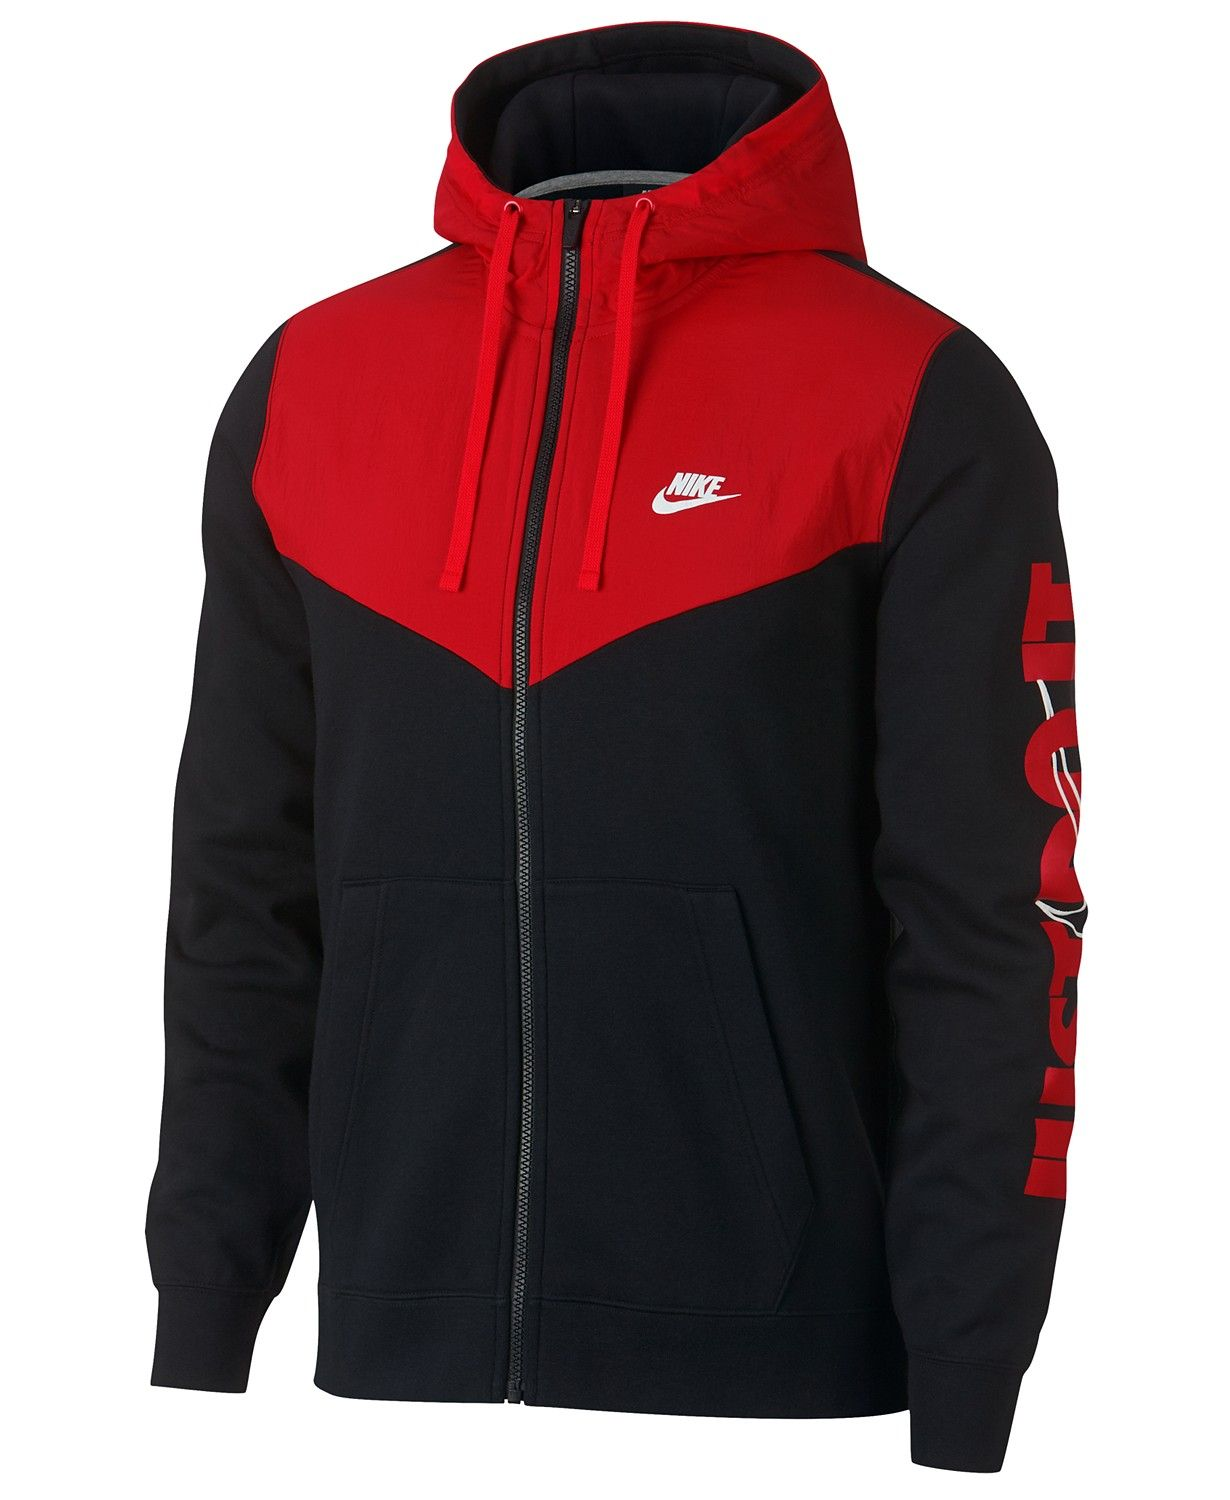 5bb55999fb7d Nike Men s Sportswear Just Do It Fleece Zip Hoodie - Hoodies   Sweatshirts  - Men - Macy s